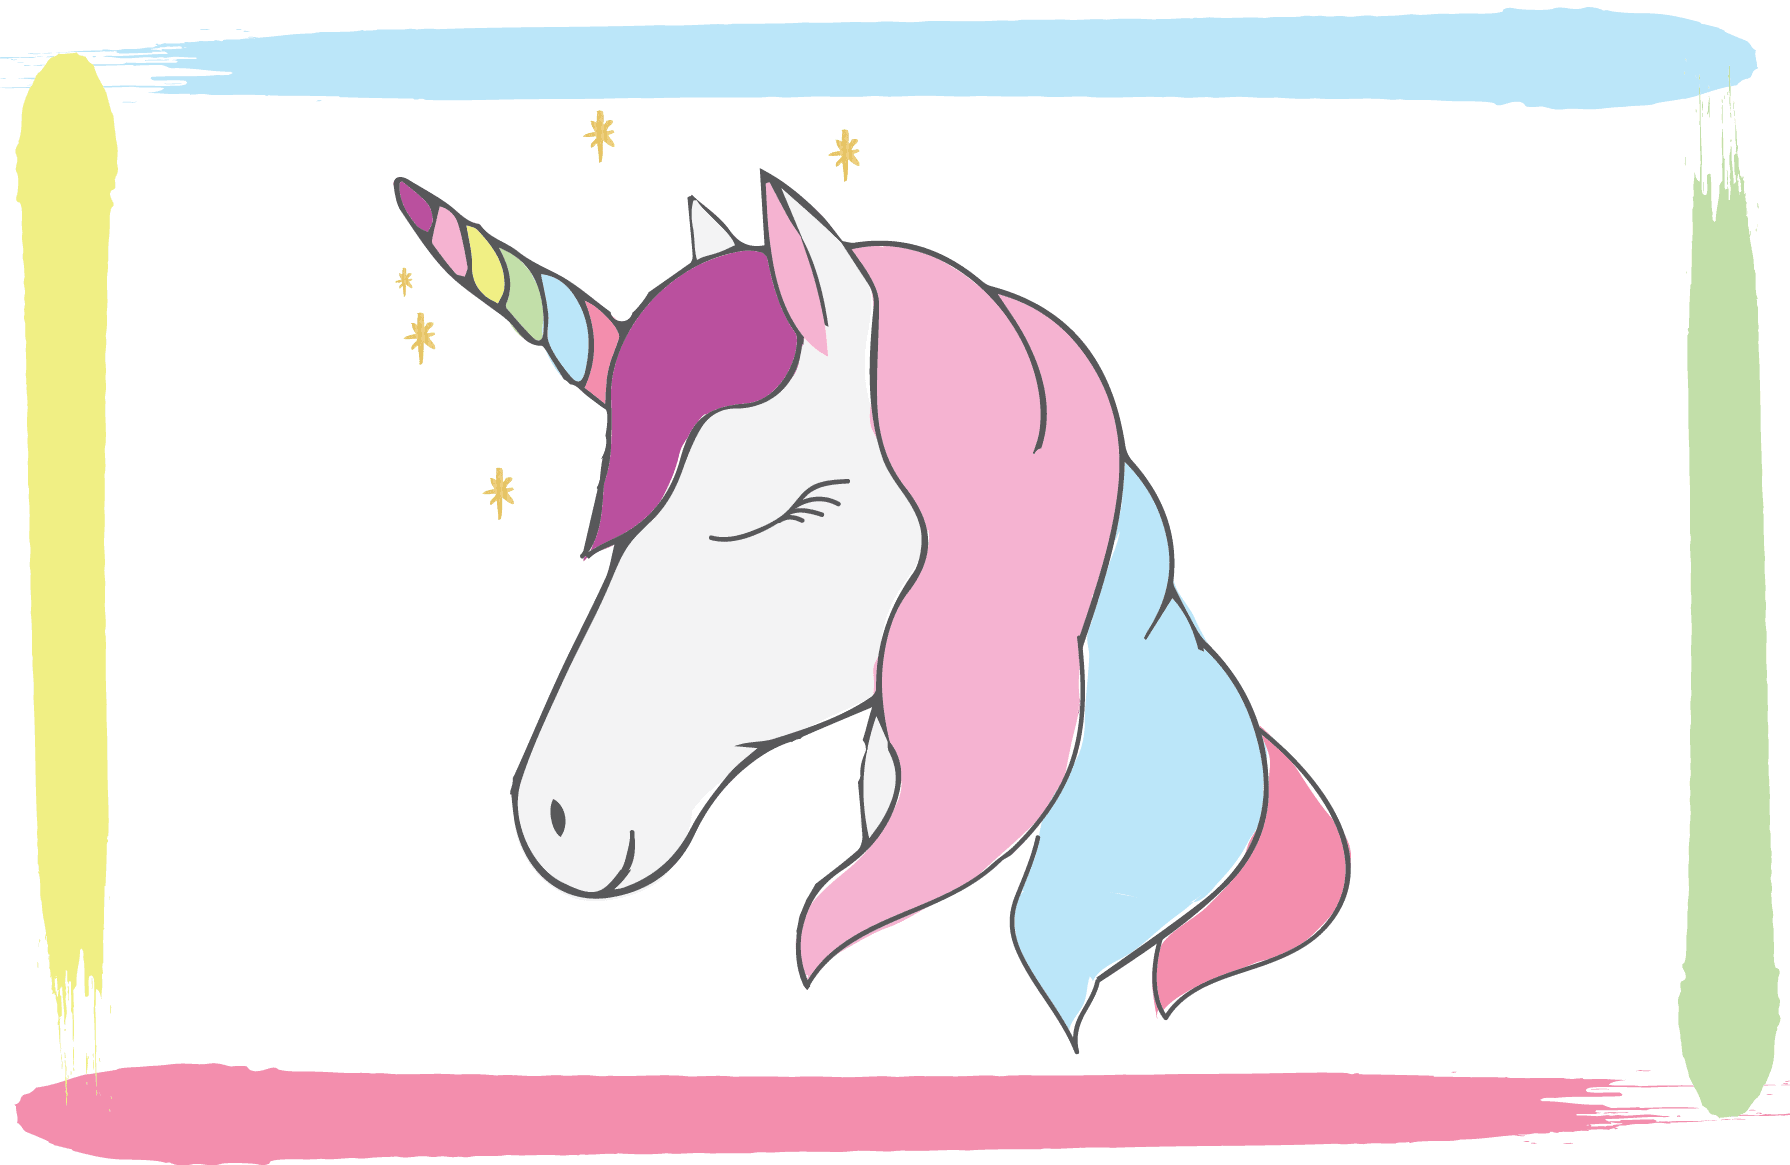 - Unicorn Templates: 17+ Free Unicorn Printables For Your Next Craft